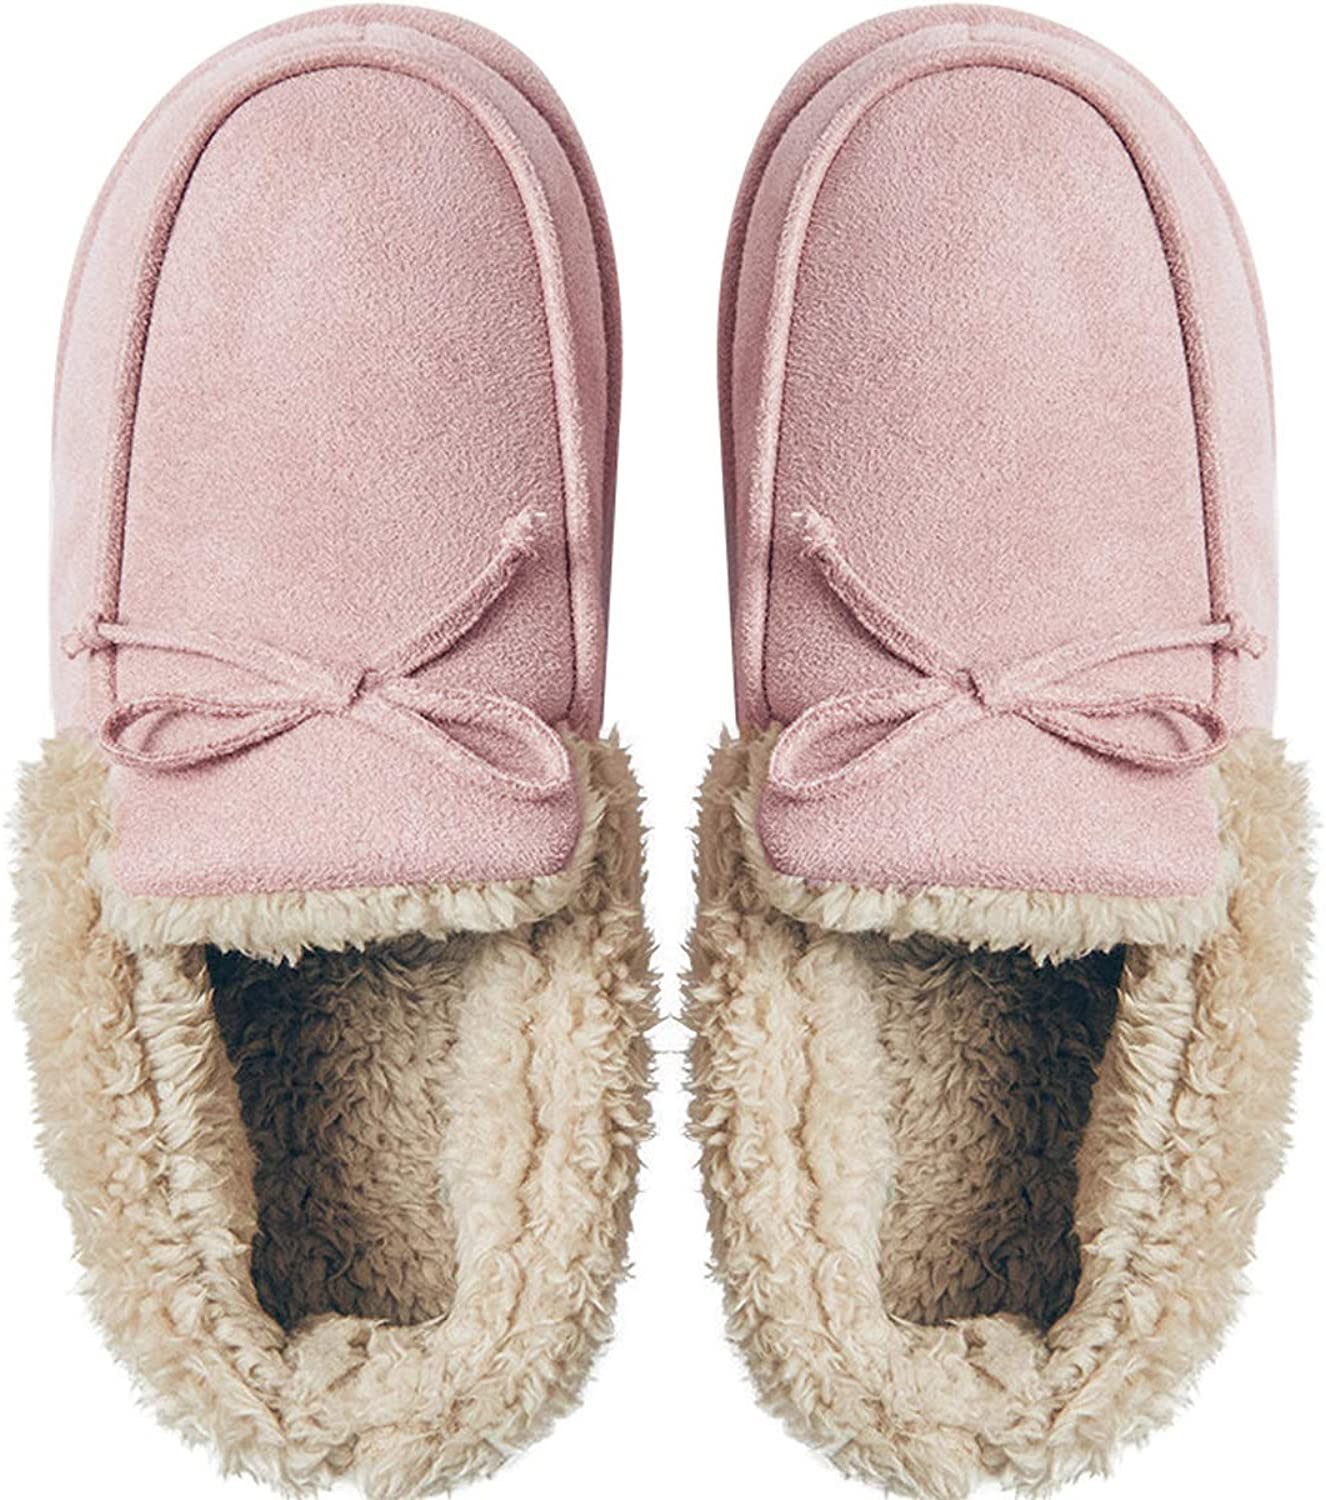 Women's Mute Home shoes Cute Bow Winter Warm Slippers Indoor Thick Soft Soles Non-Slip Slippers